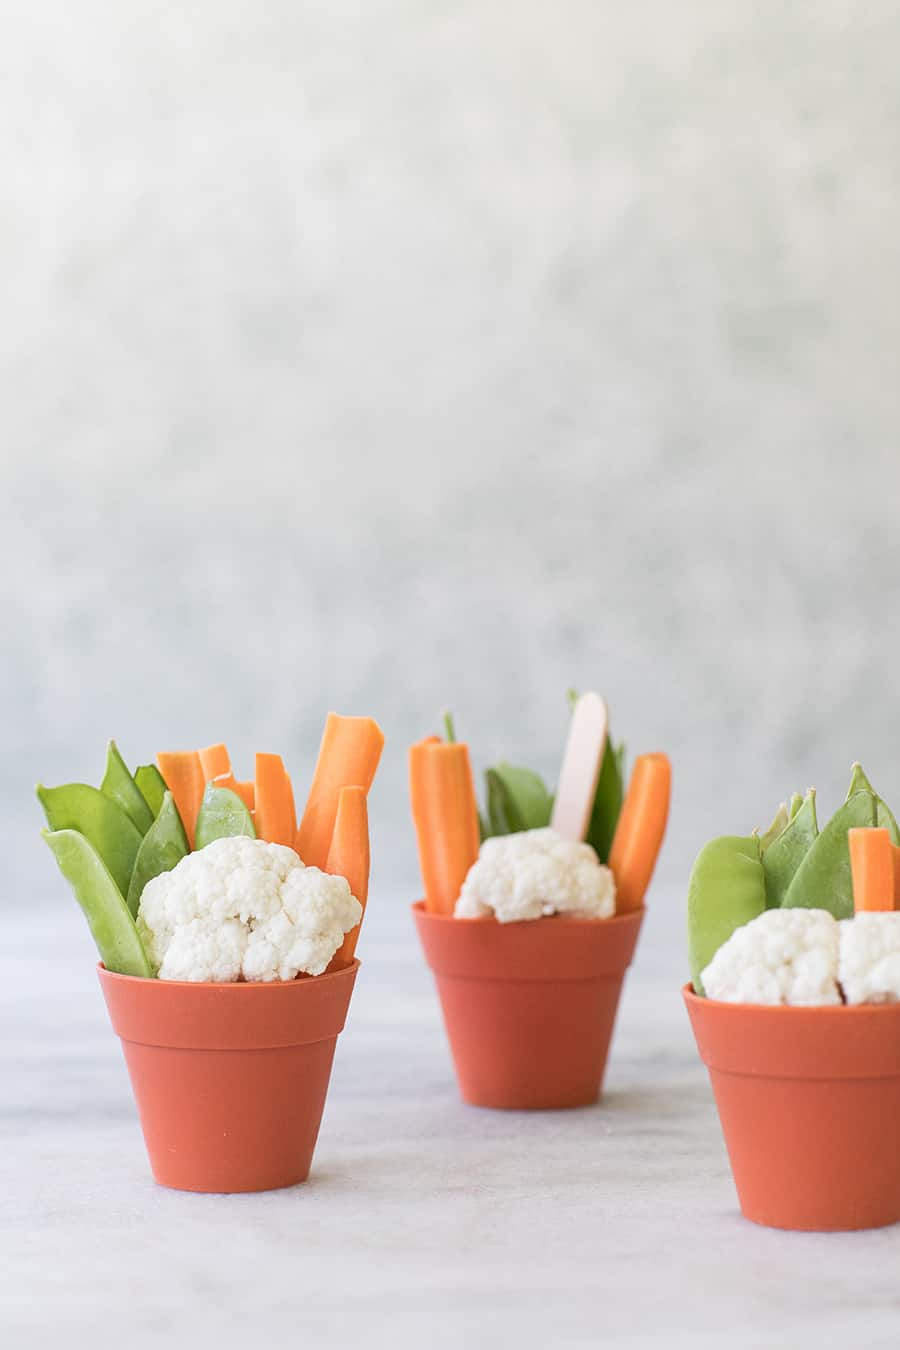 Vegetables inside little pots with hummus